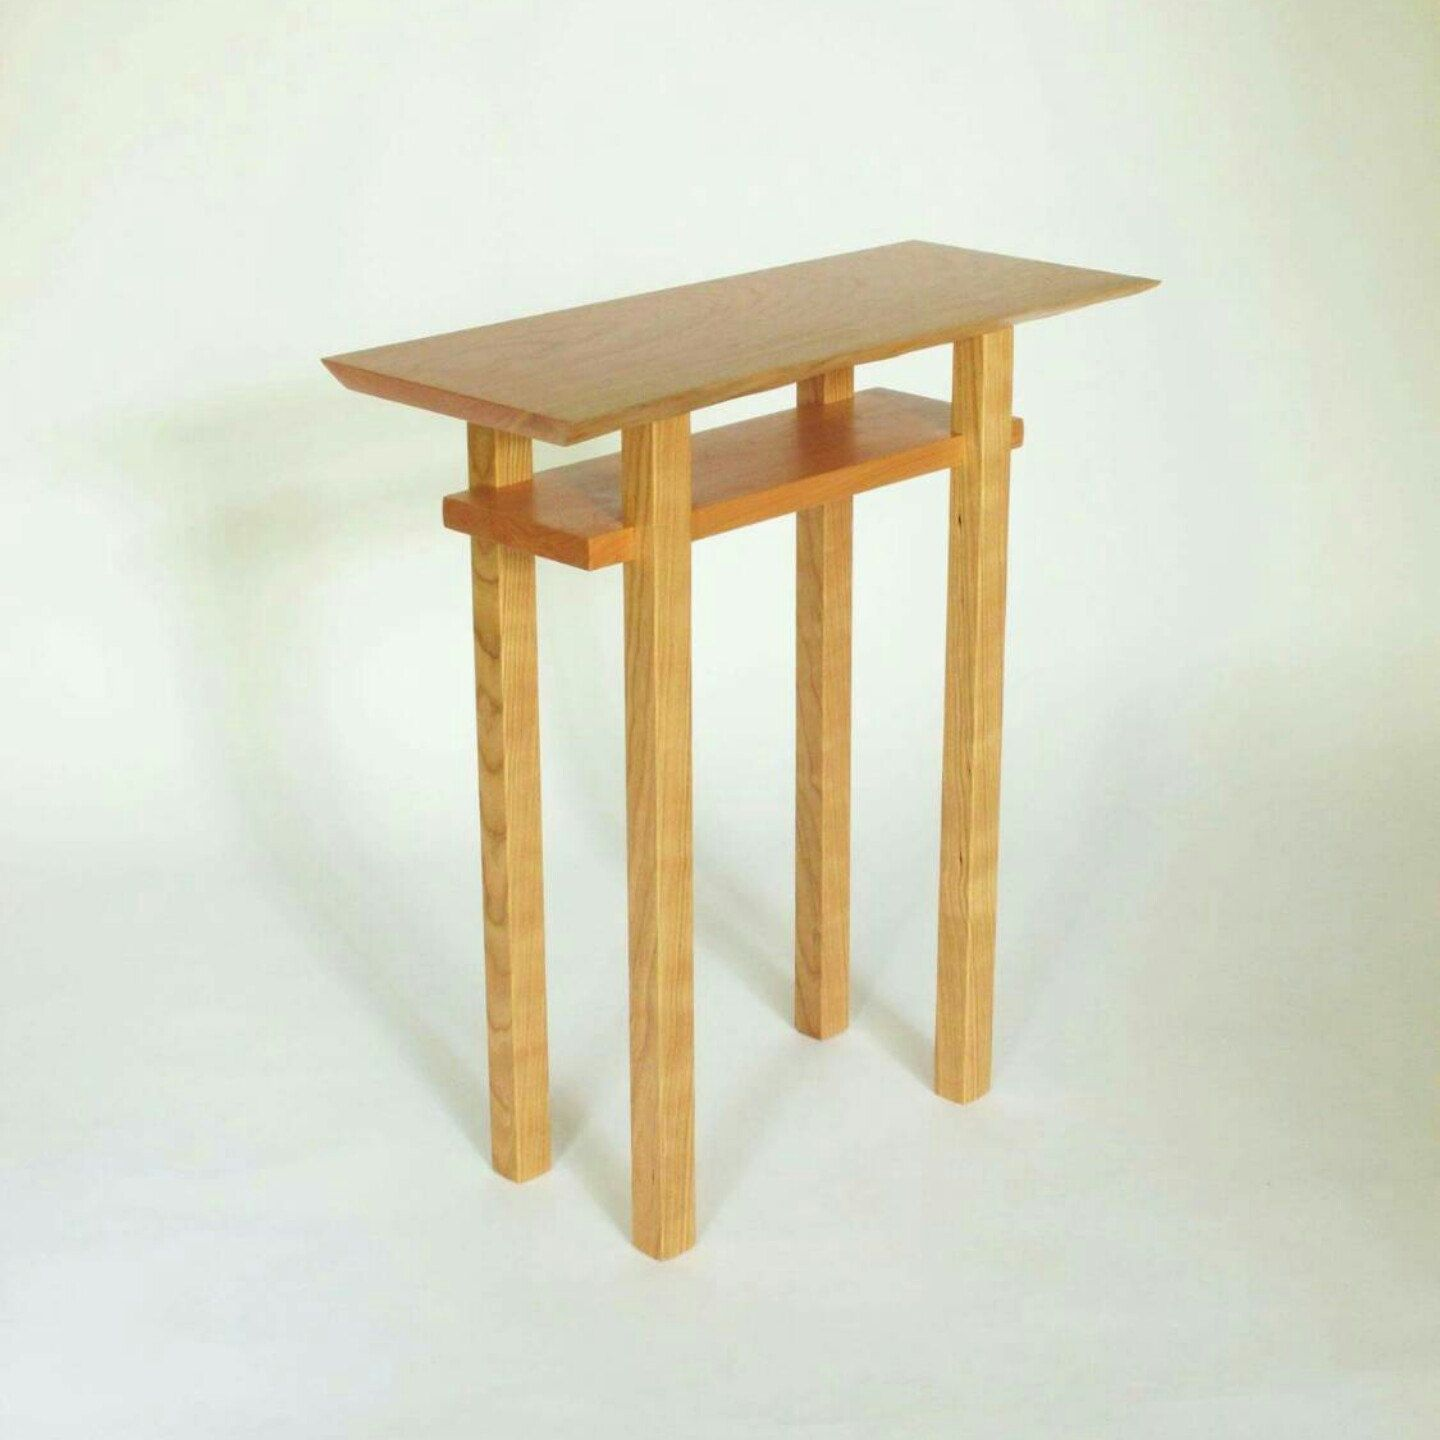 mokuzaifurniture shared new narrow table unique small accent tables this live edge cherry end the perfect for just about every space natural shape tree highlight top patio